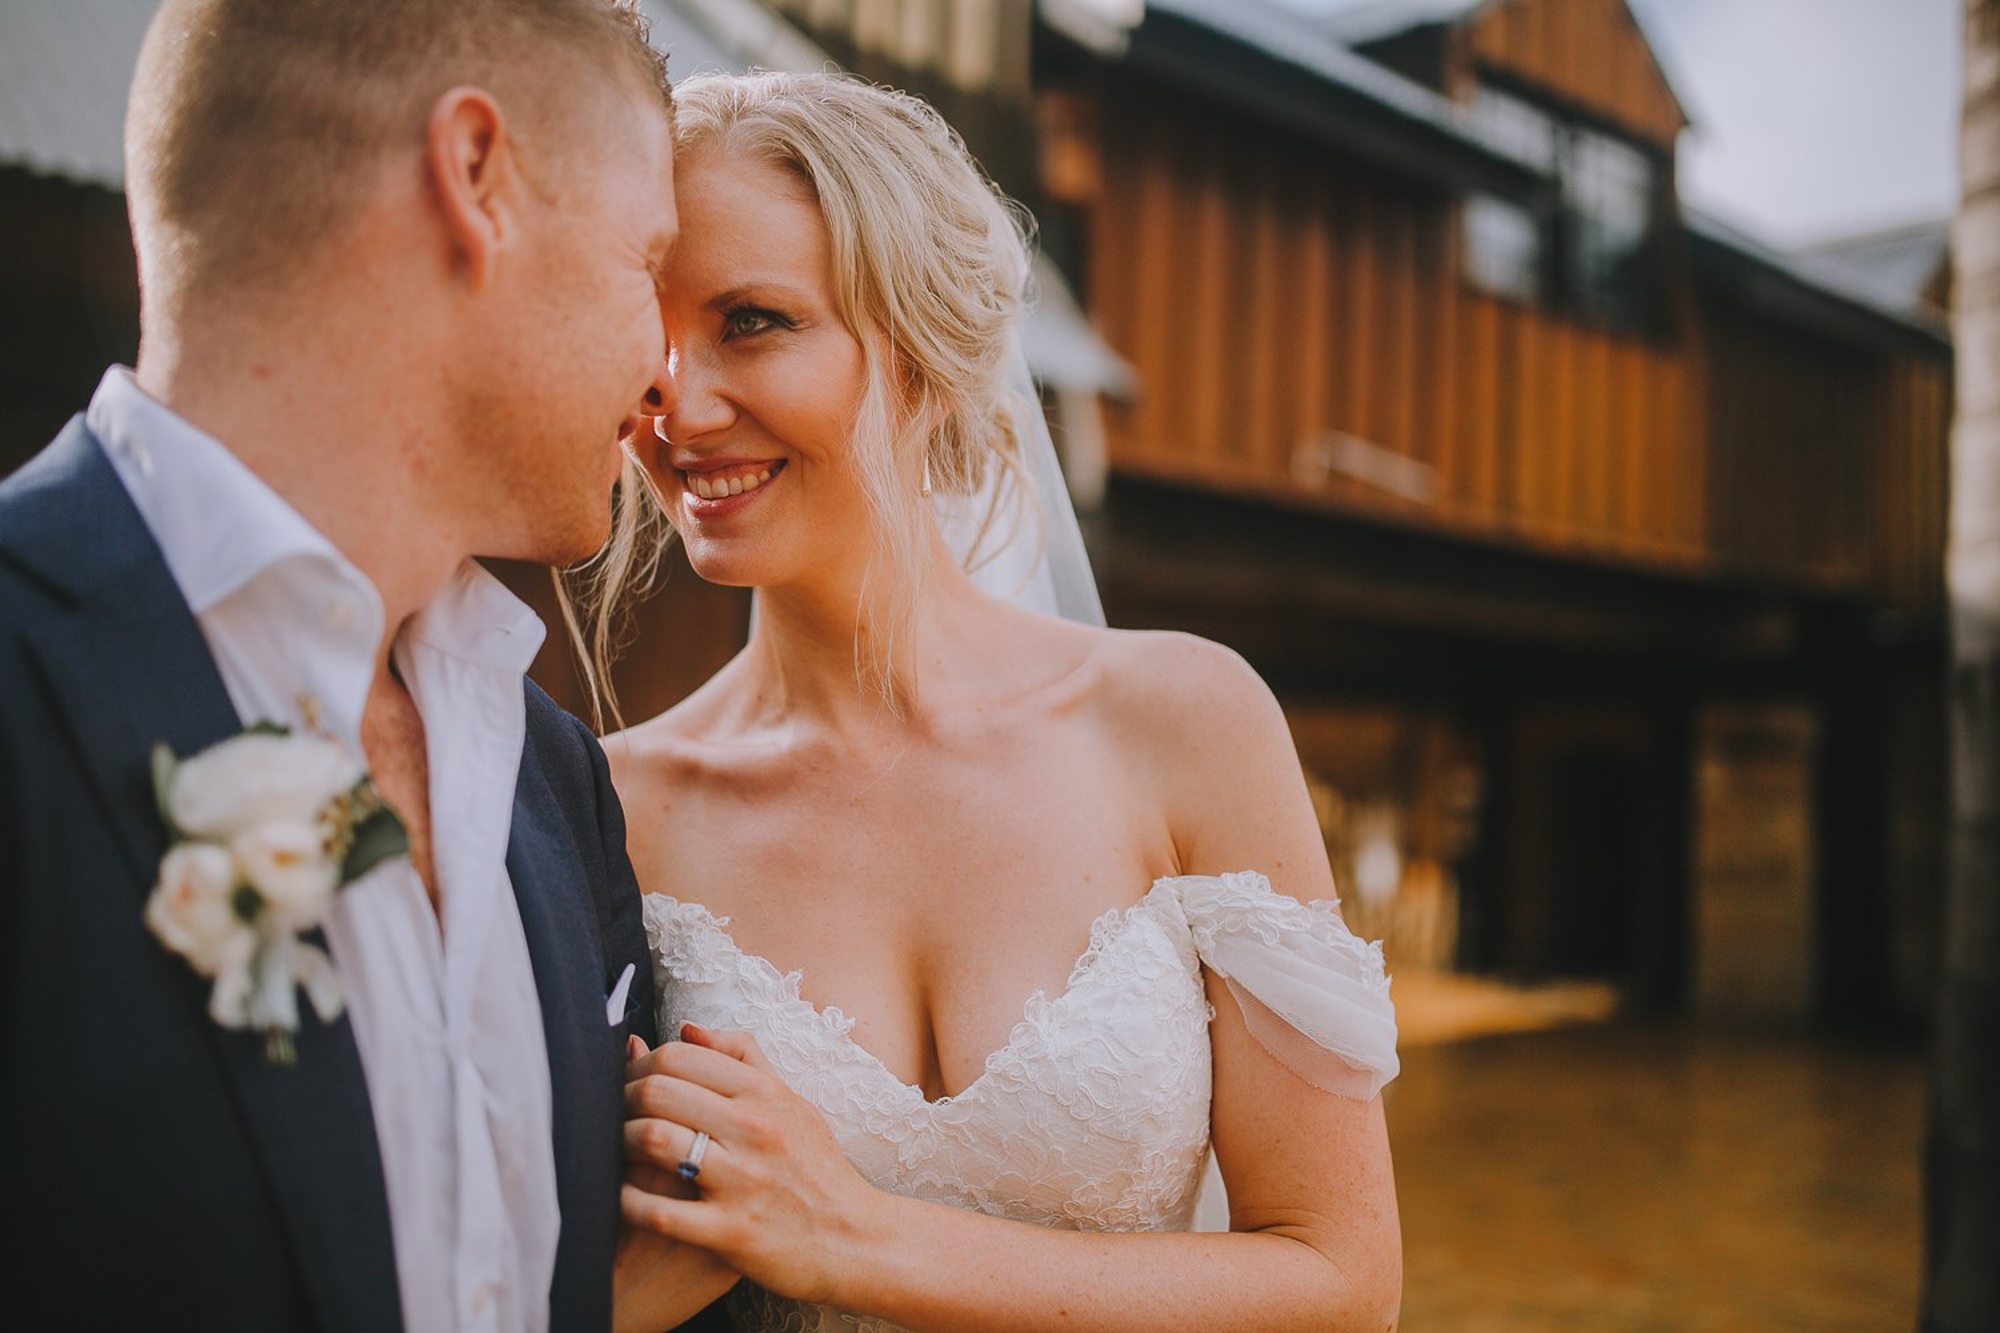 The first steps to feeling comfortable in your wedding photos.